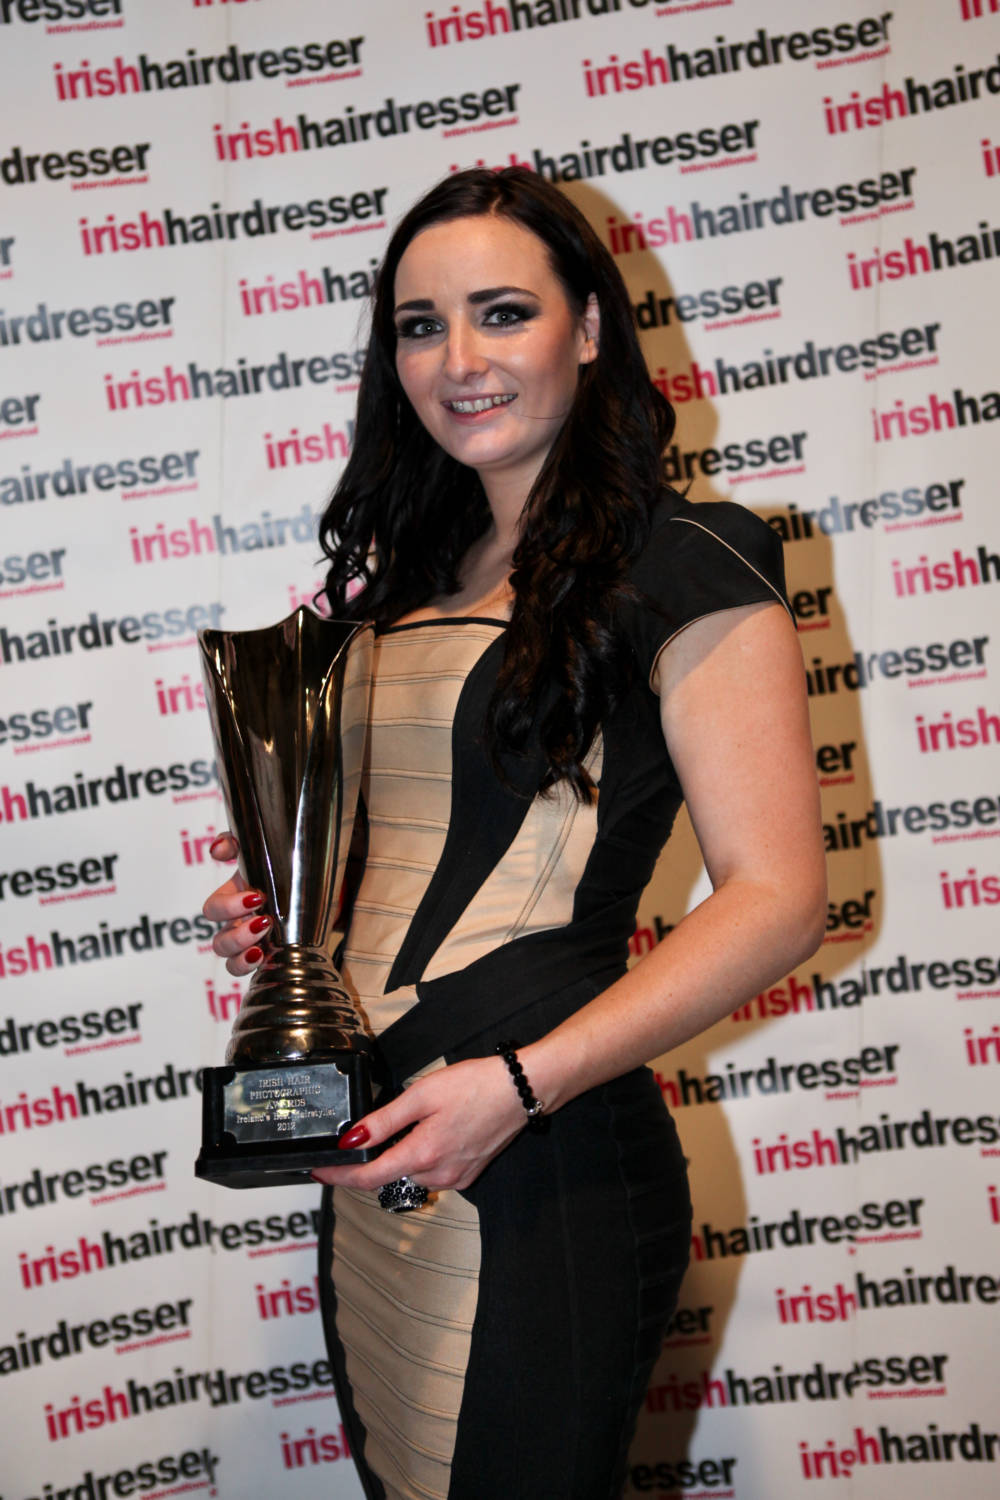 how to become a hairdresser ireland